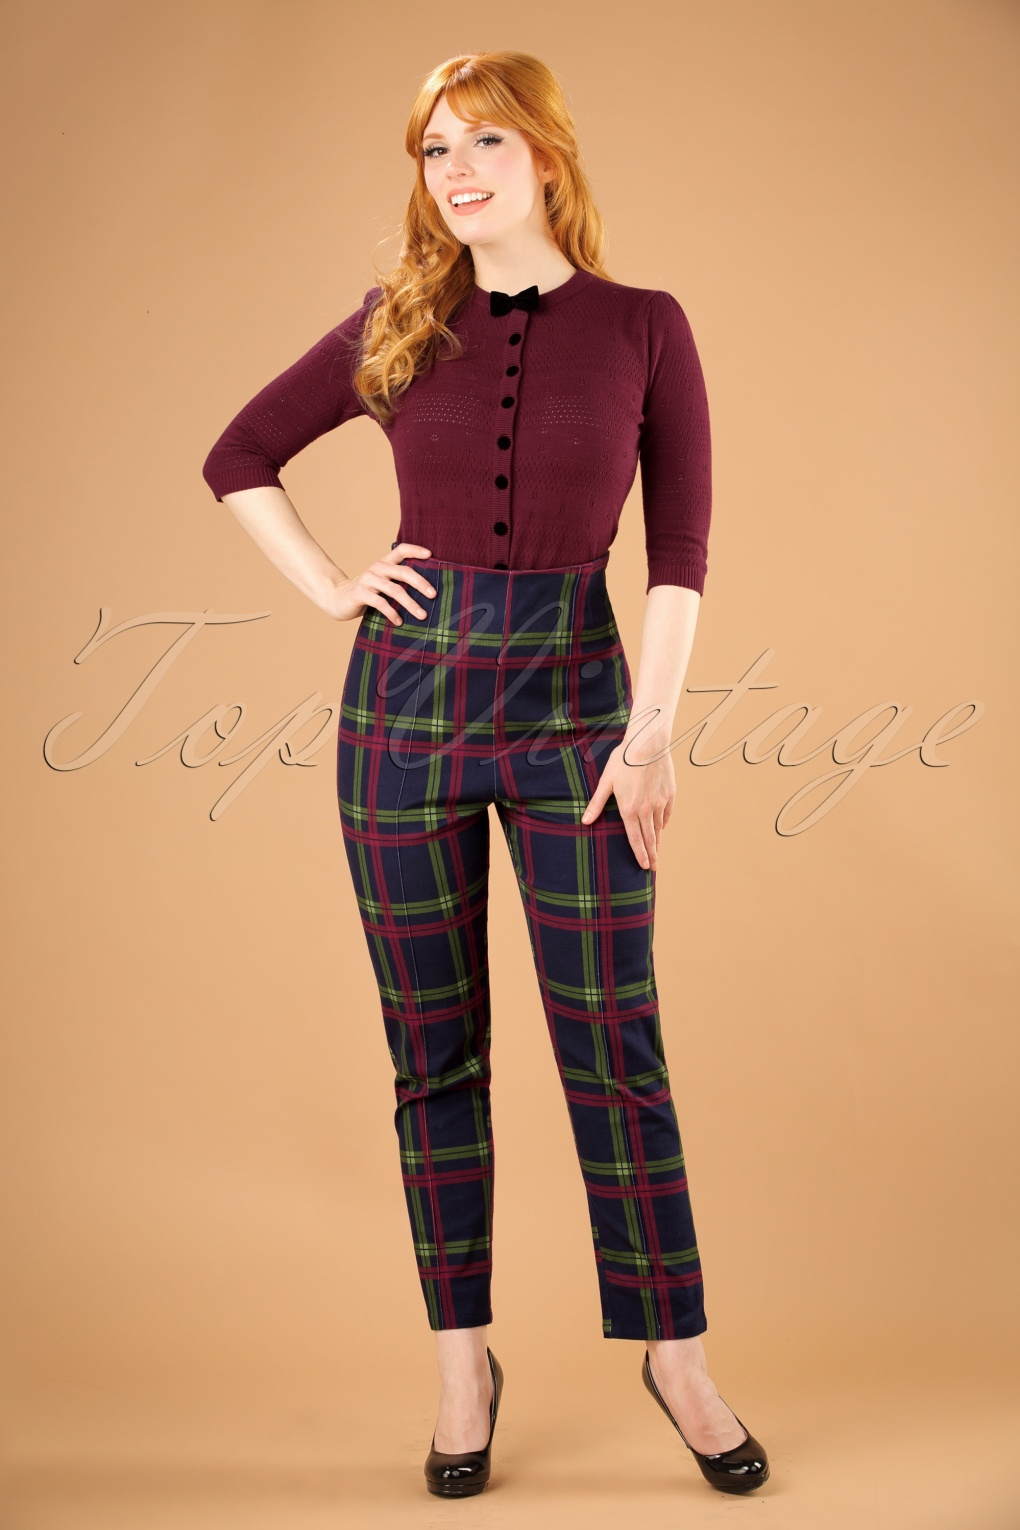 Vintage High Waisted Trousers, Sailor Pants, Jeans 50s Bonnie Darling Check Trousers in Navy £47.61 AT vintagedancer.com